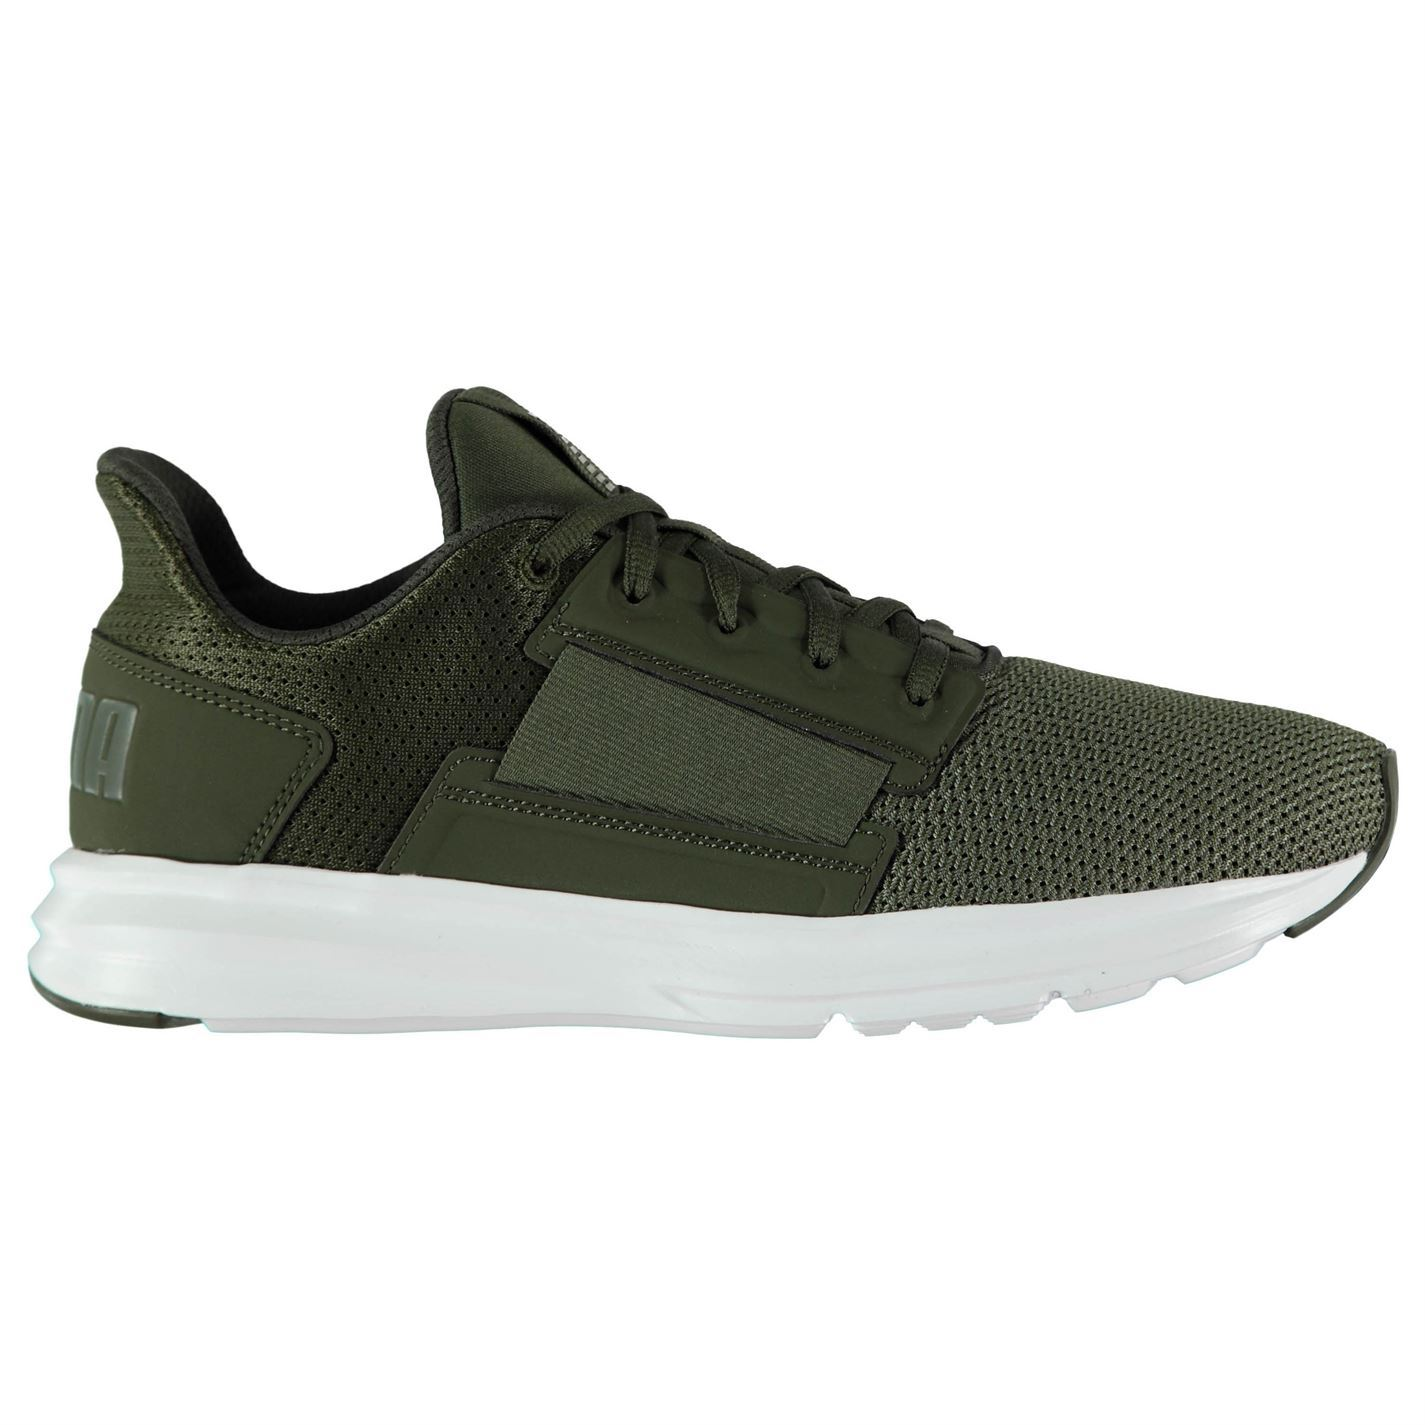 Puma Enzo Street Sneakers hommes Gents Runners Runners Runners Laces Fastened Lightweight Pattern 8cc8ee